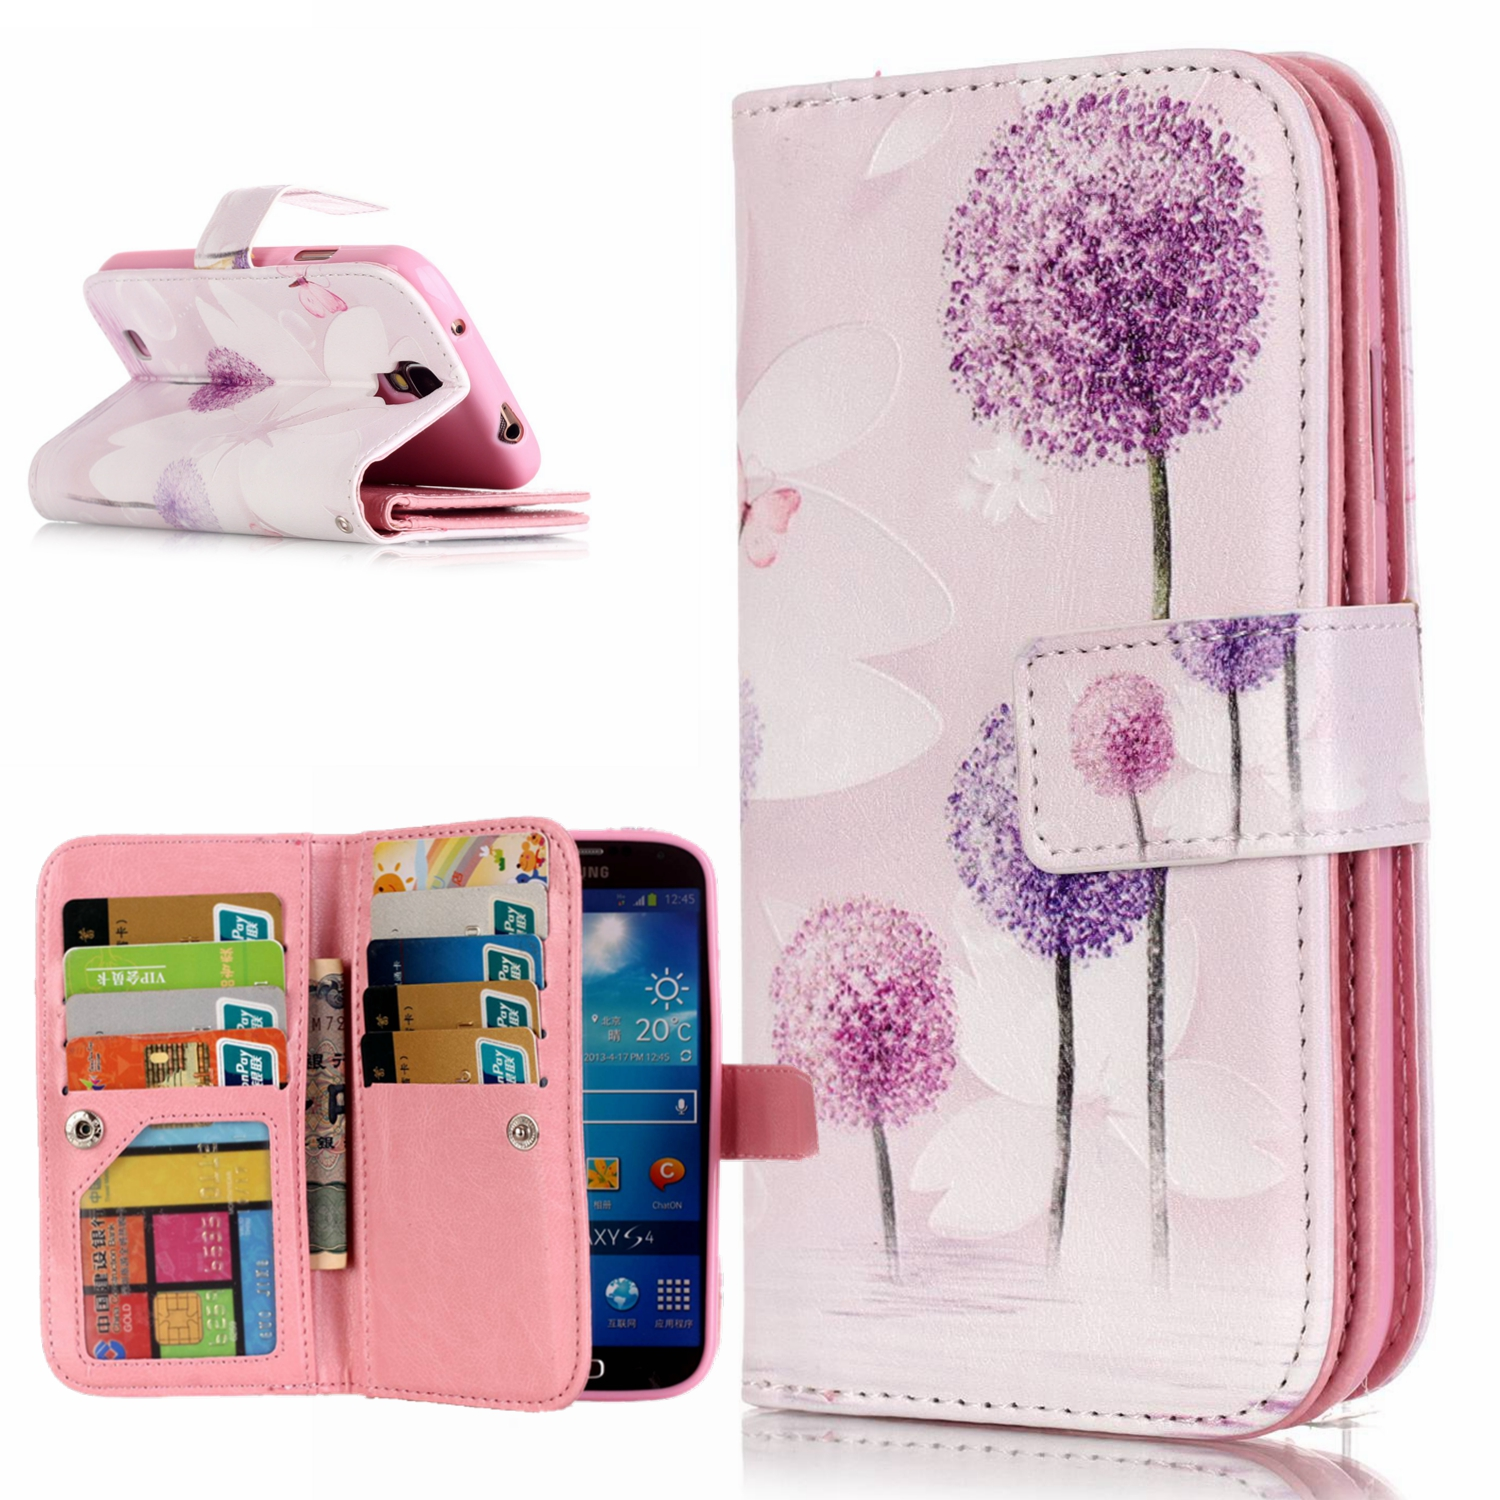 9 Card Holder Wallet Case For Samsung Galaxy S4 I9500 Luxury PU Leather Flip Phone Cases for Samsung Galxy S IV 4 Celular Funda image